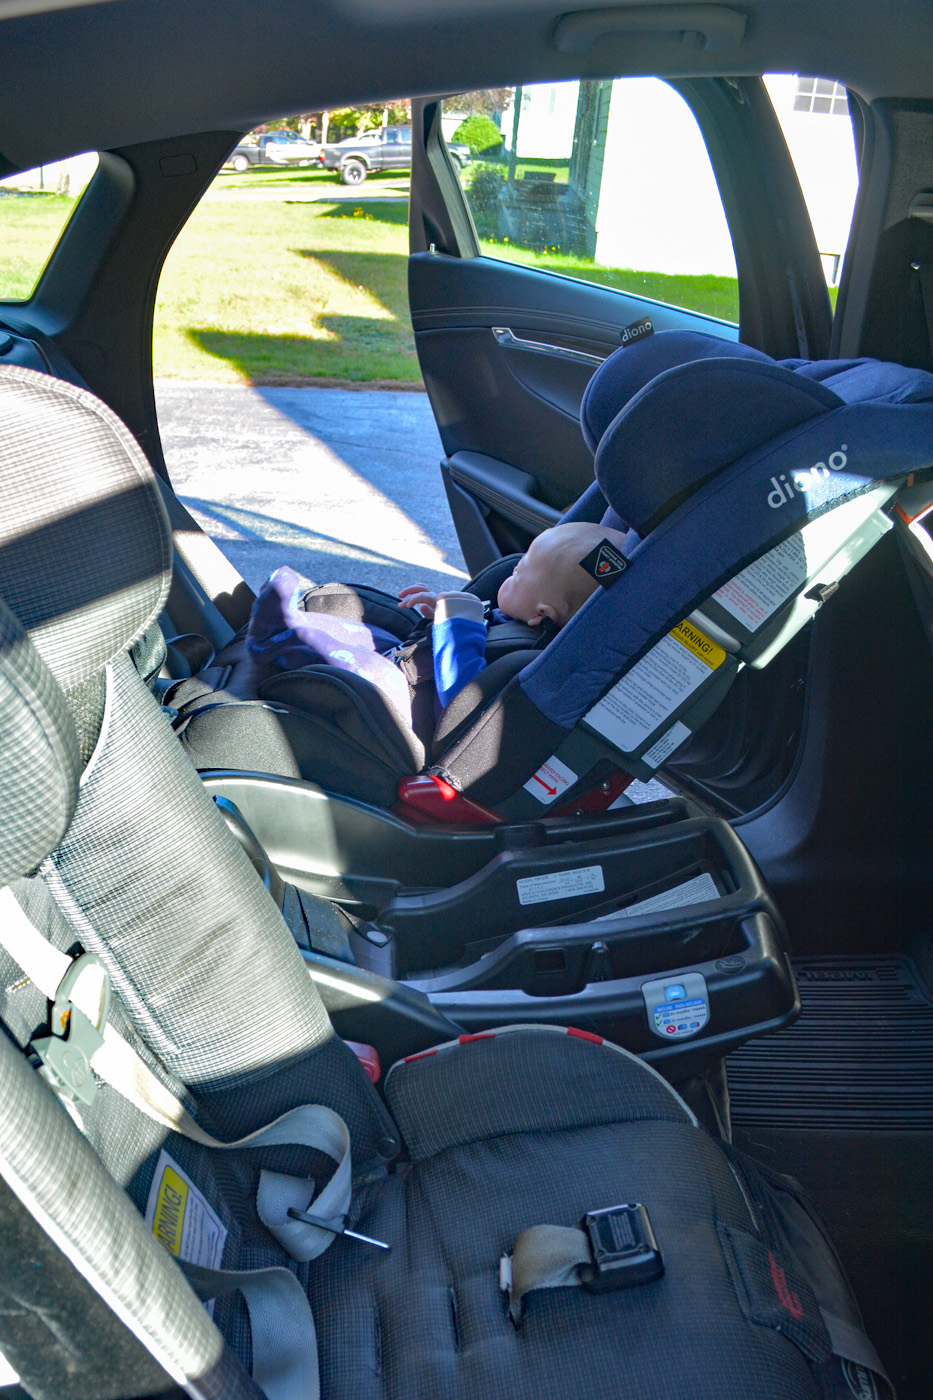 Diono Radian RXT - All in One Convertible Car Seat